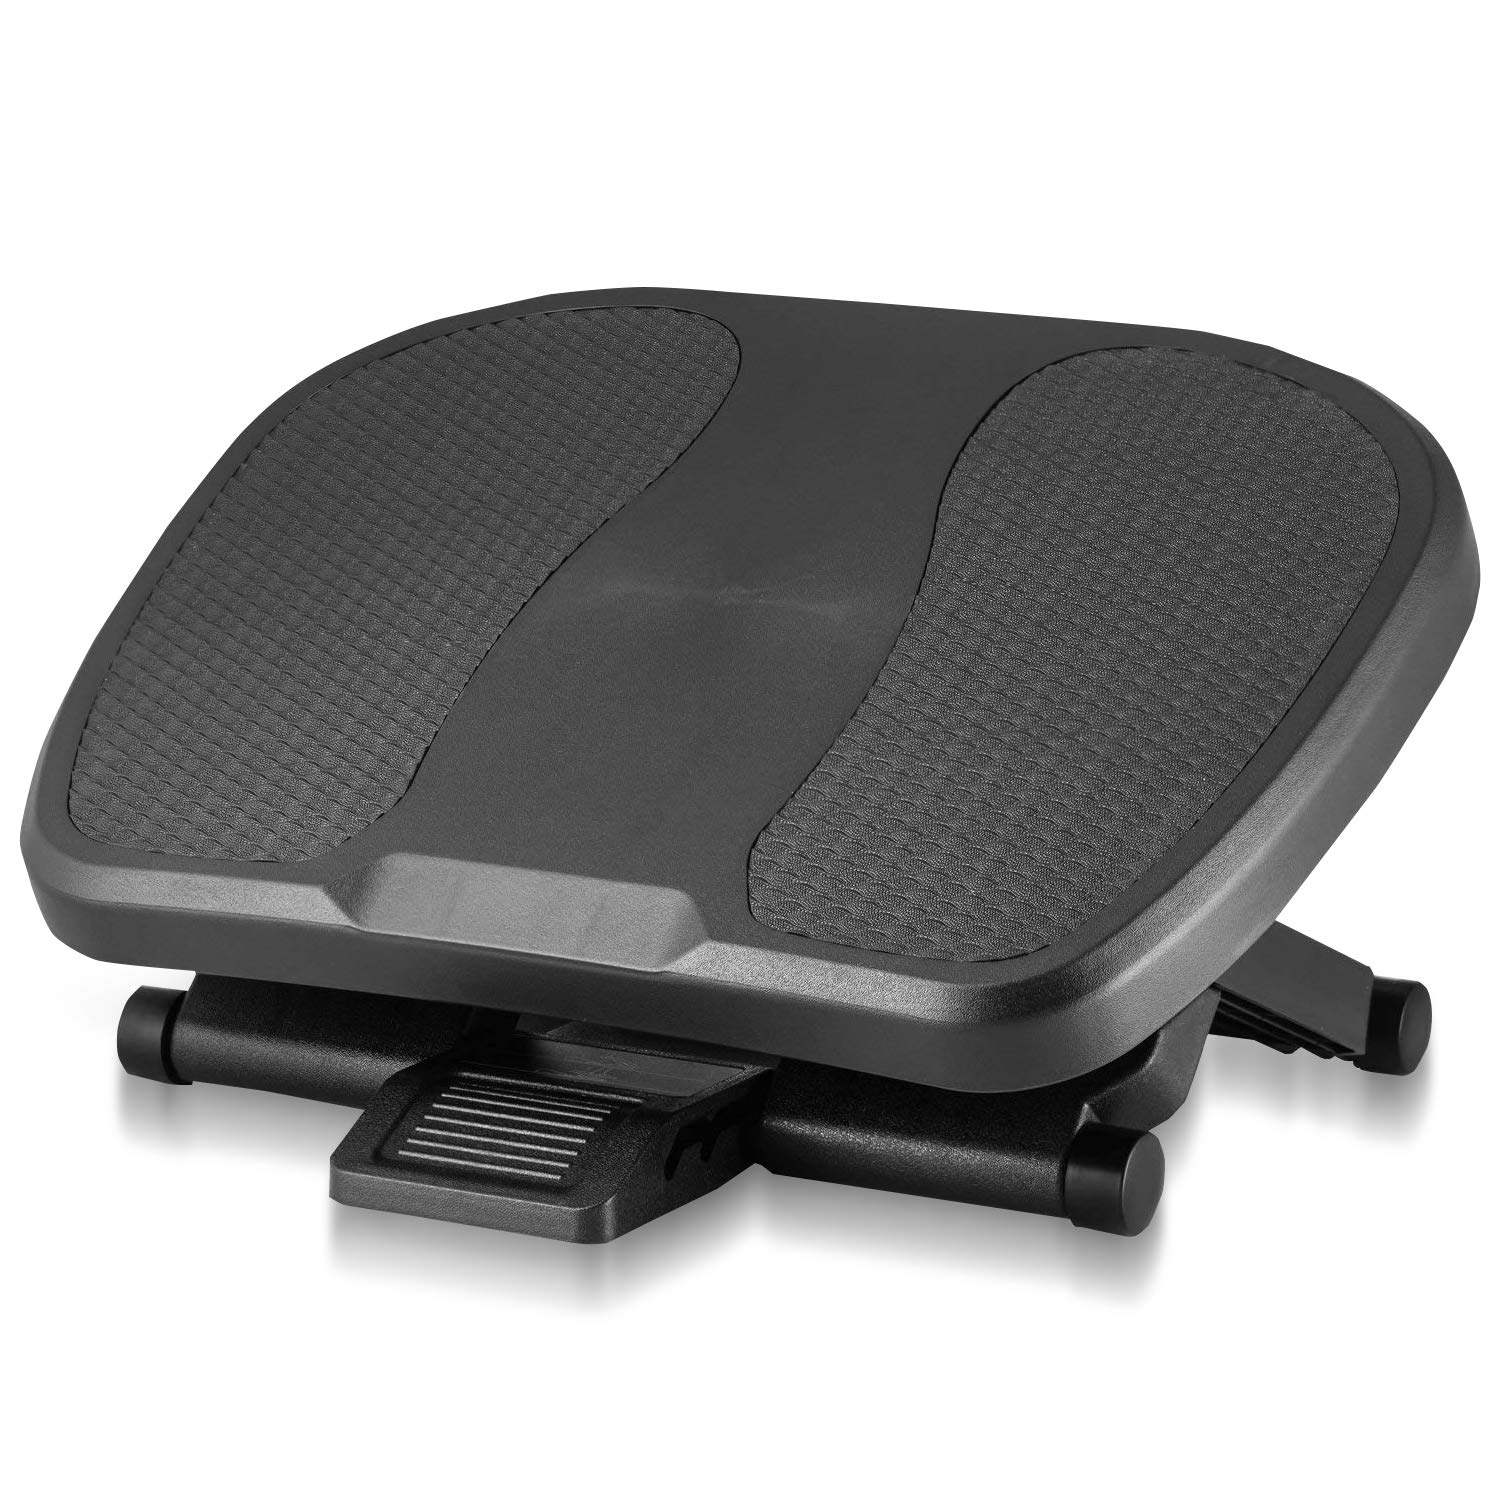 Under Desk Foot Rest, Black Footstool & Office Ergonomic Footrest, Adjustable Angle & 3 Different Height Positions, 17.7'' X 13'' - Great for Home & Work